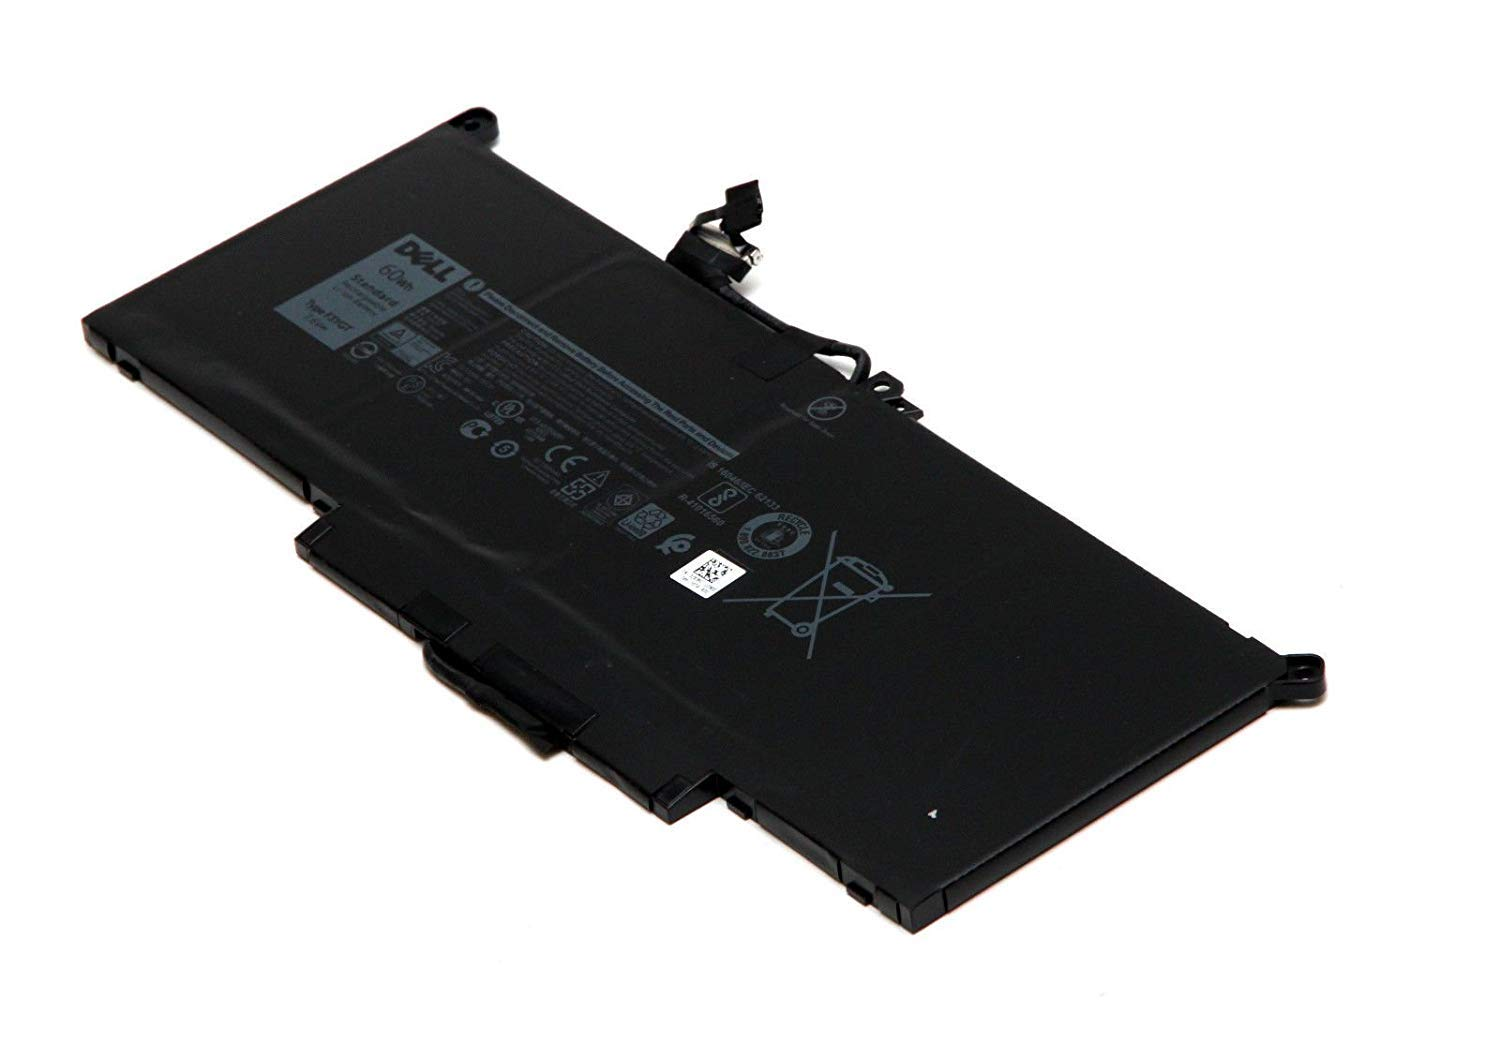 New Genuine Battery for Dell Laitutde 7480 60Wh 7.6V Battery 0DM3WC DM3WC